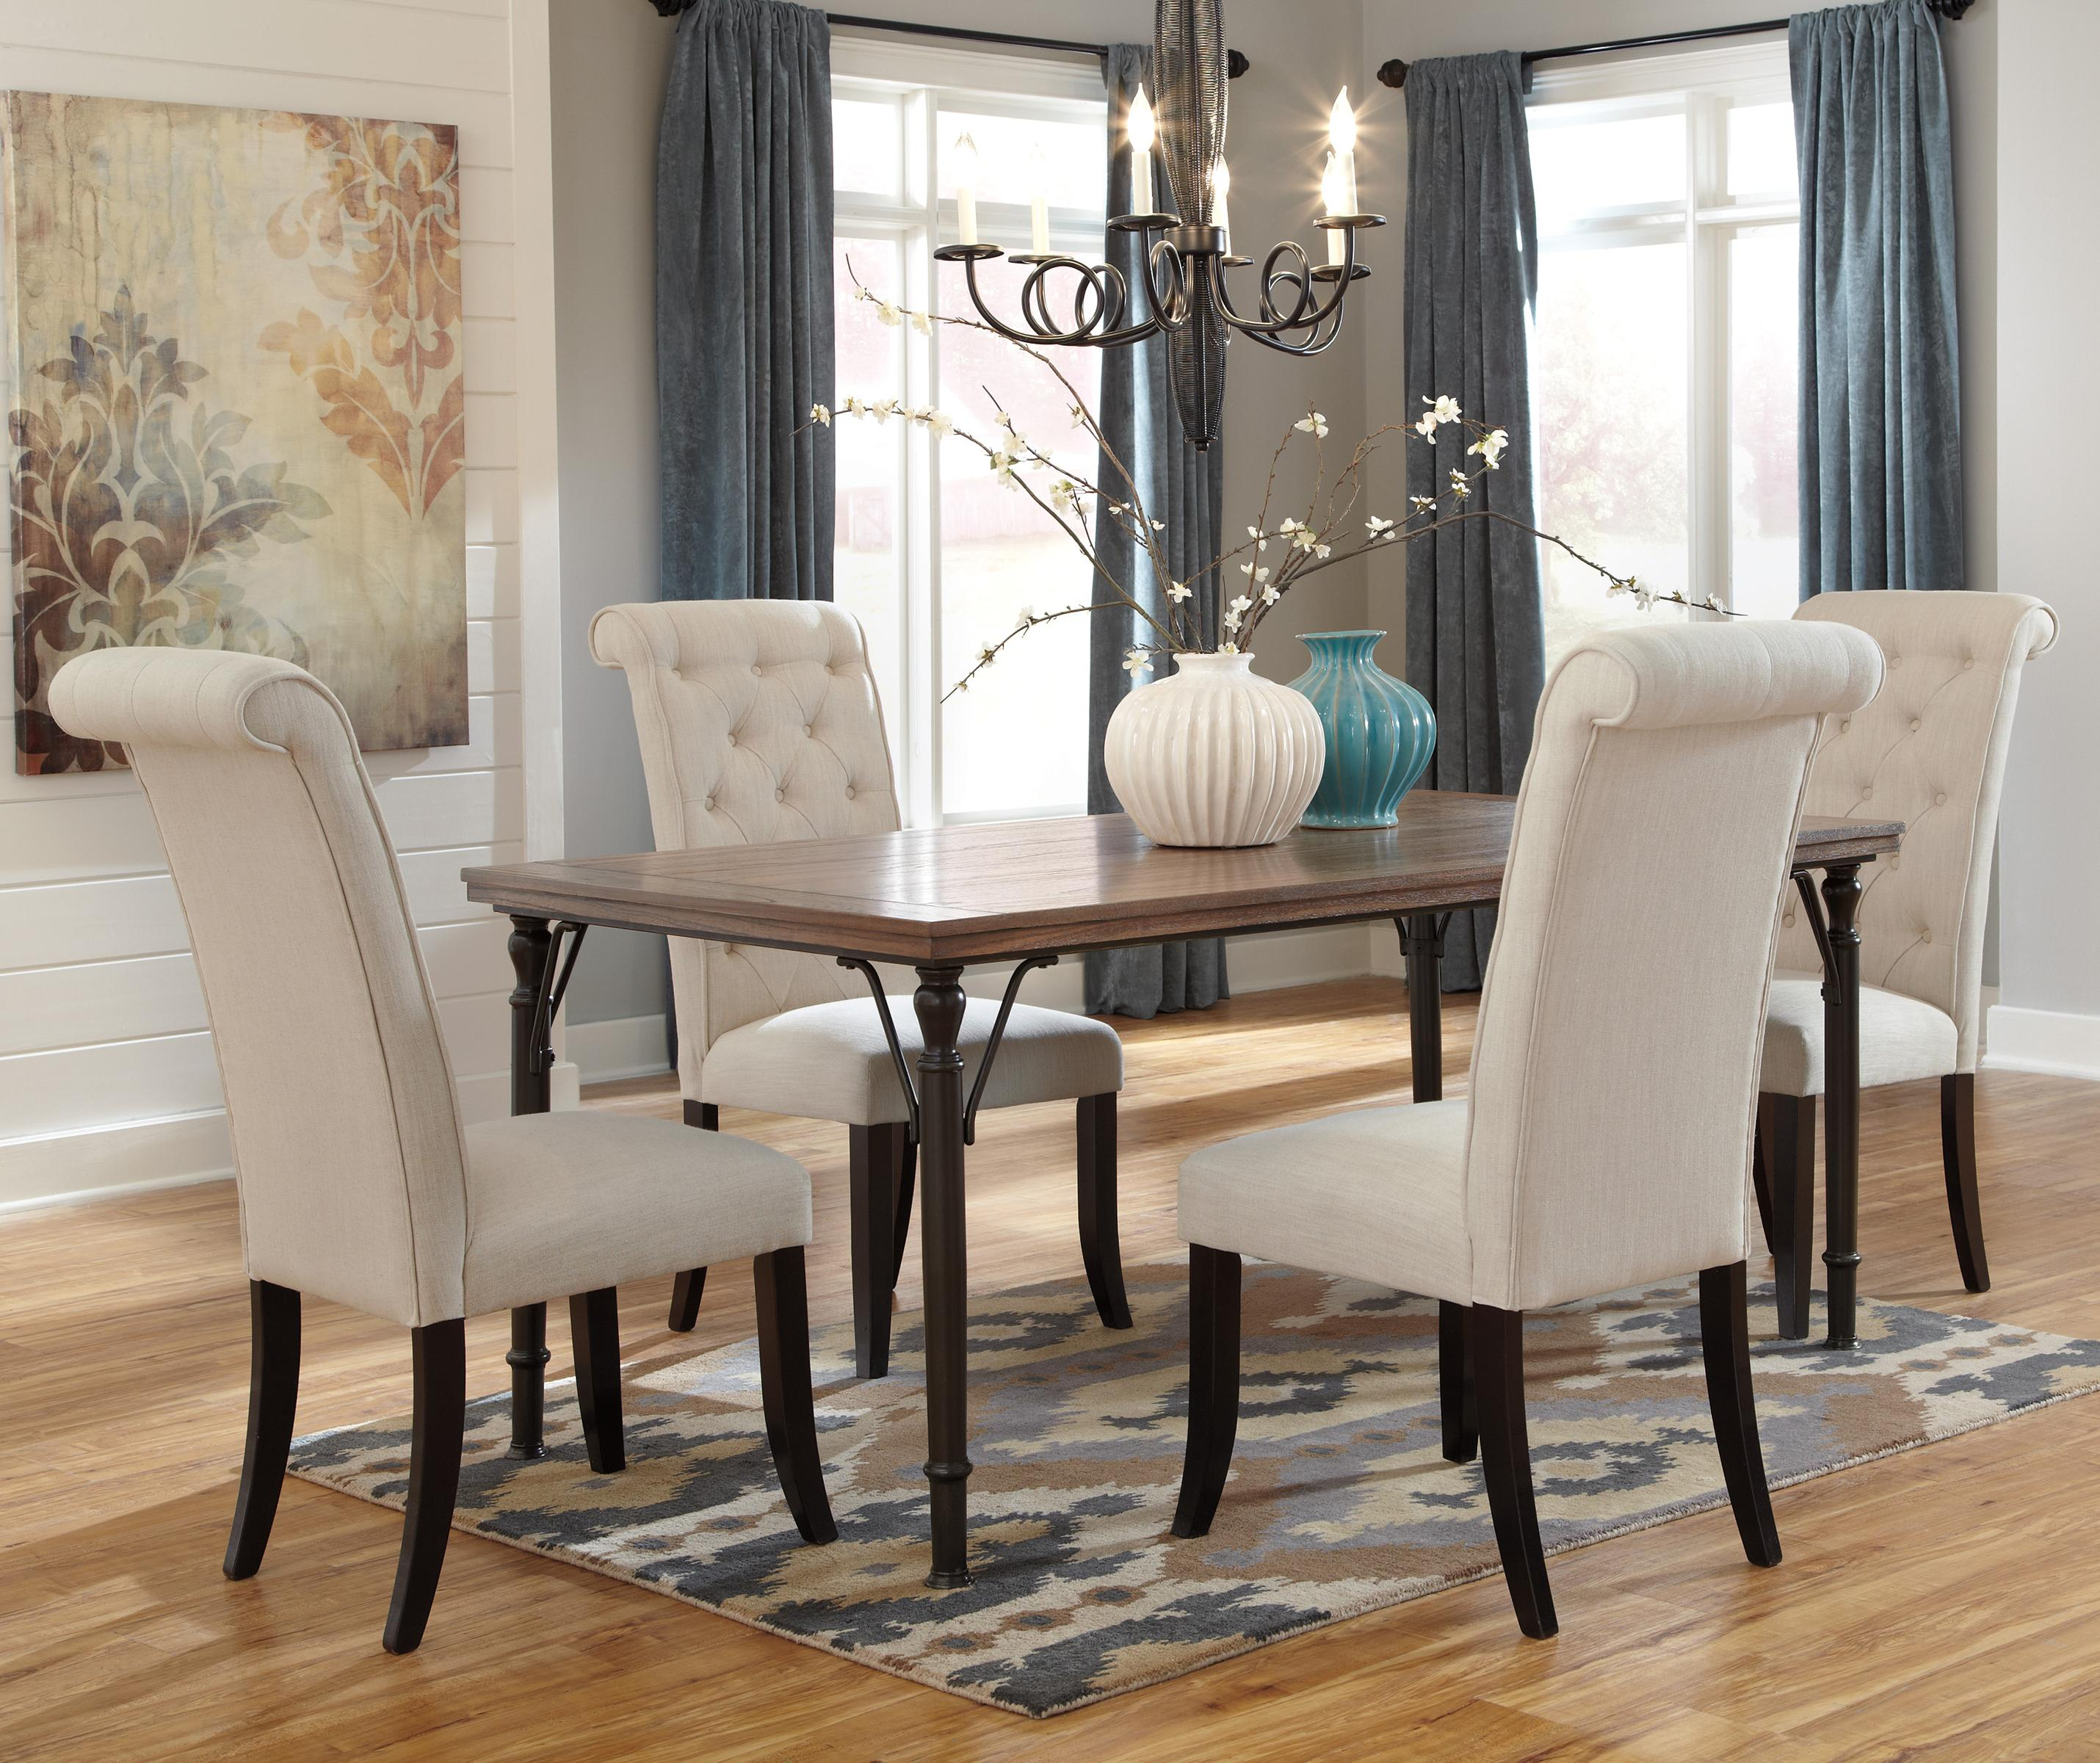 dining room chair ideas | Wood Flooring Ides with Hardwood Floors - MidCityEast